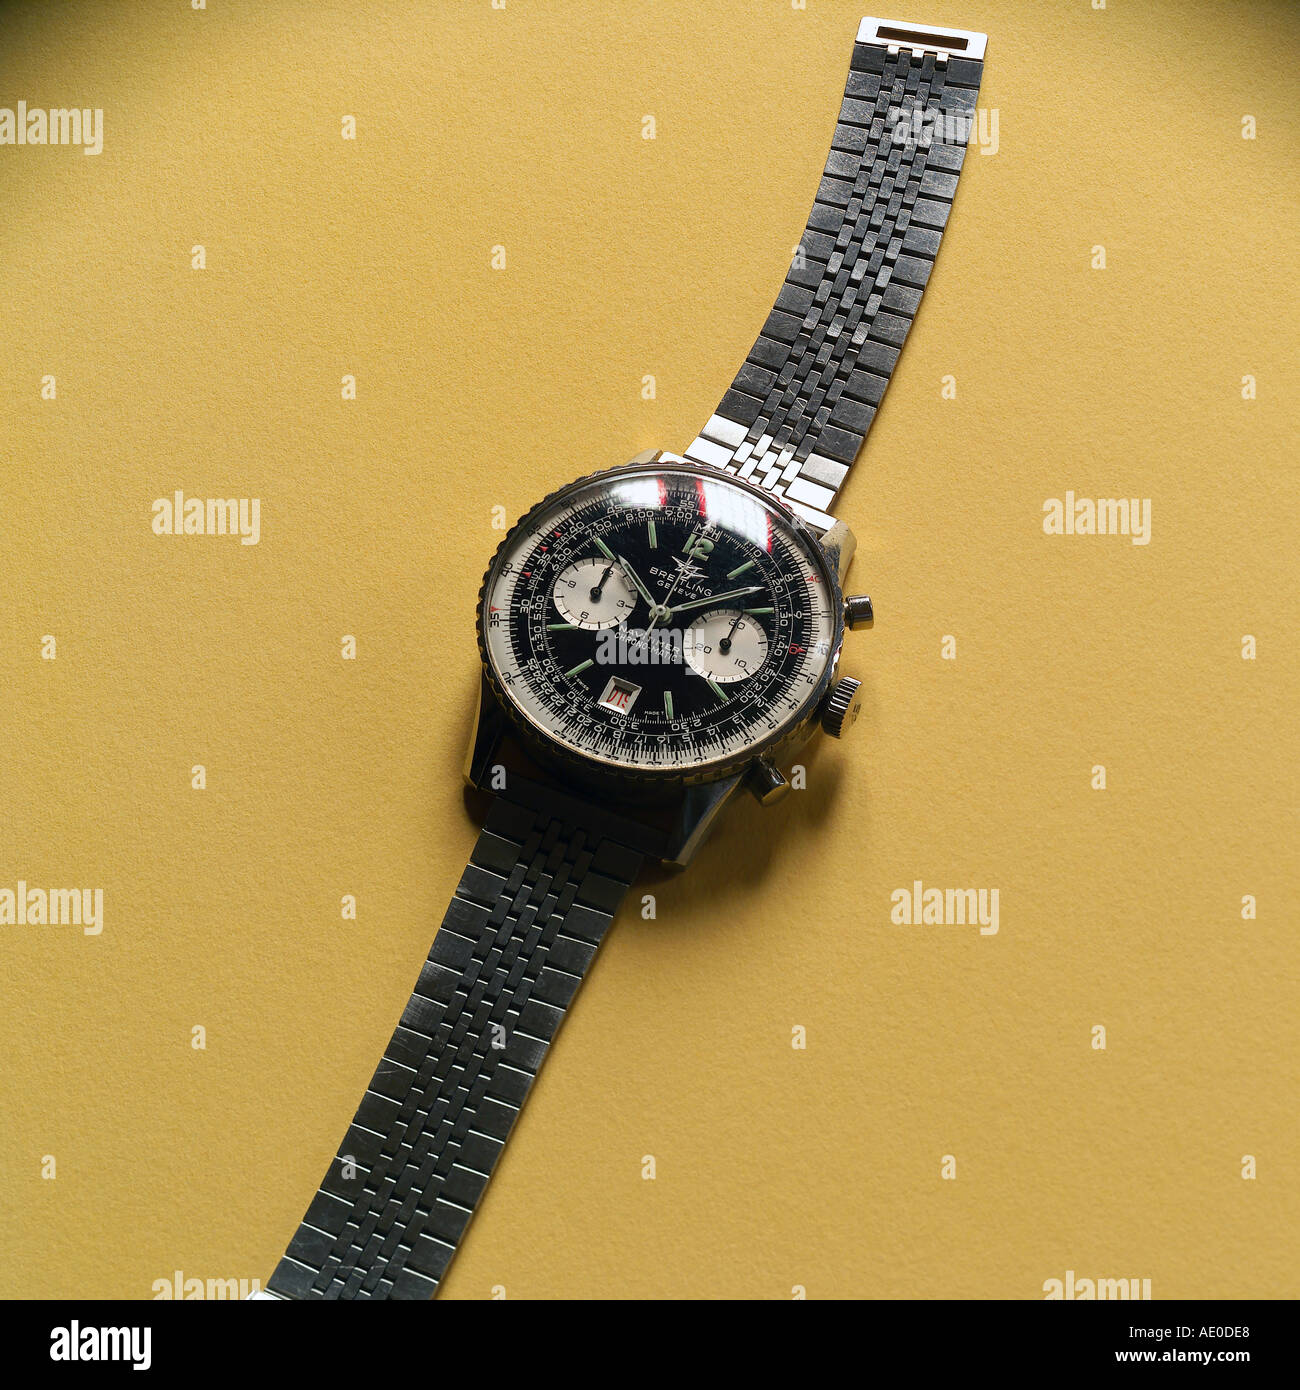 BREITLING SWISS CHRONOGRAPH WRIST WATCH ON YELLOW BACKGROUND - Stock Image